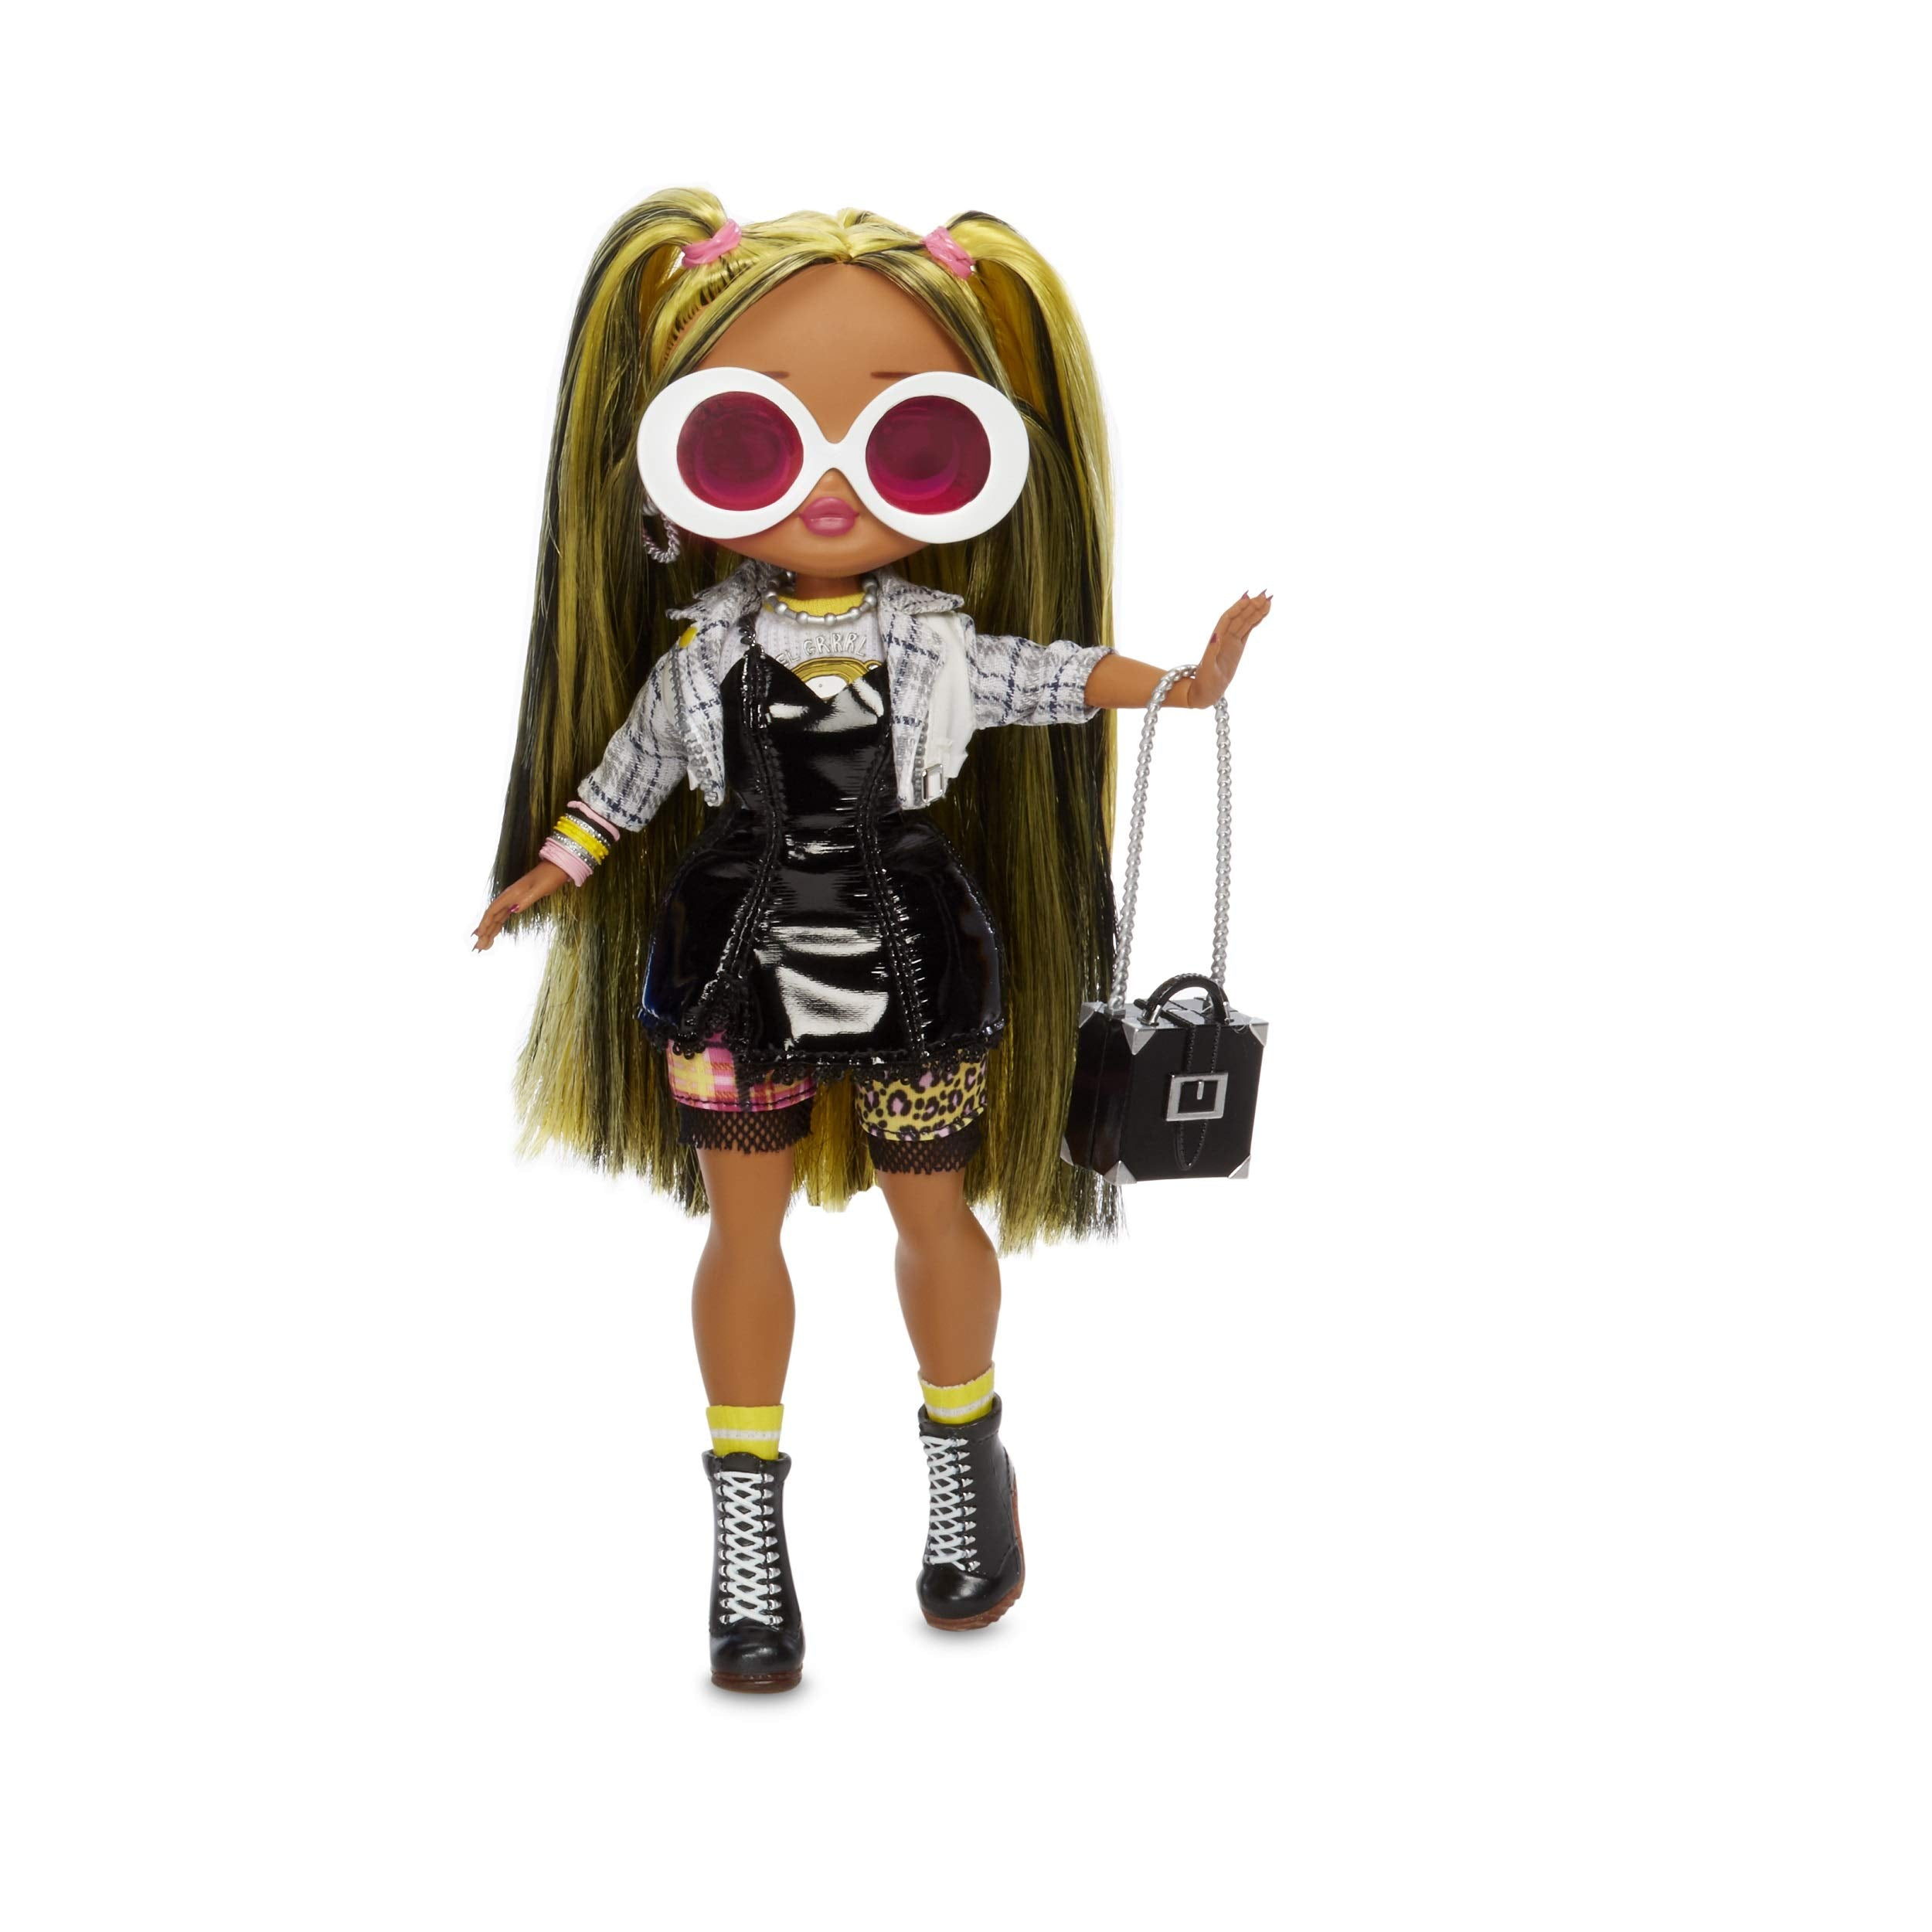 L.O.L. Surprise! 565123E7C O.M.G. Alt Grrrl Fashion Doll with 20 Surprises, Multi